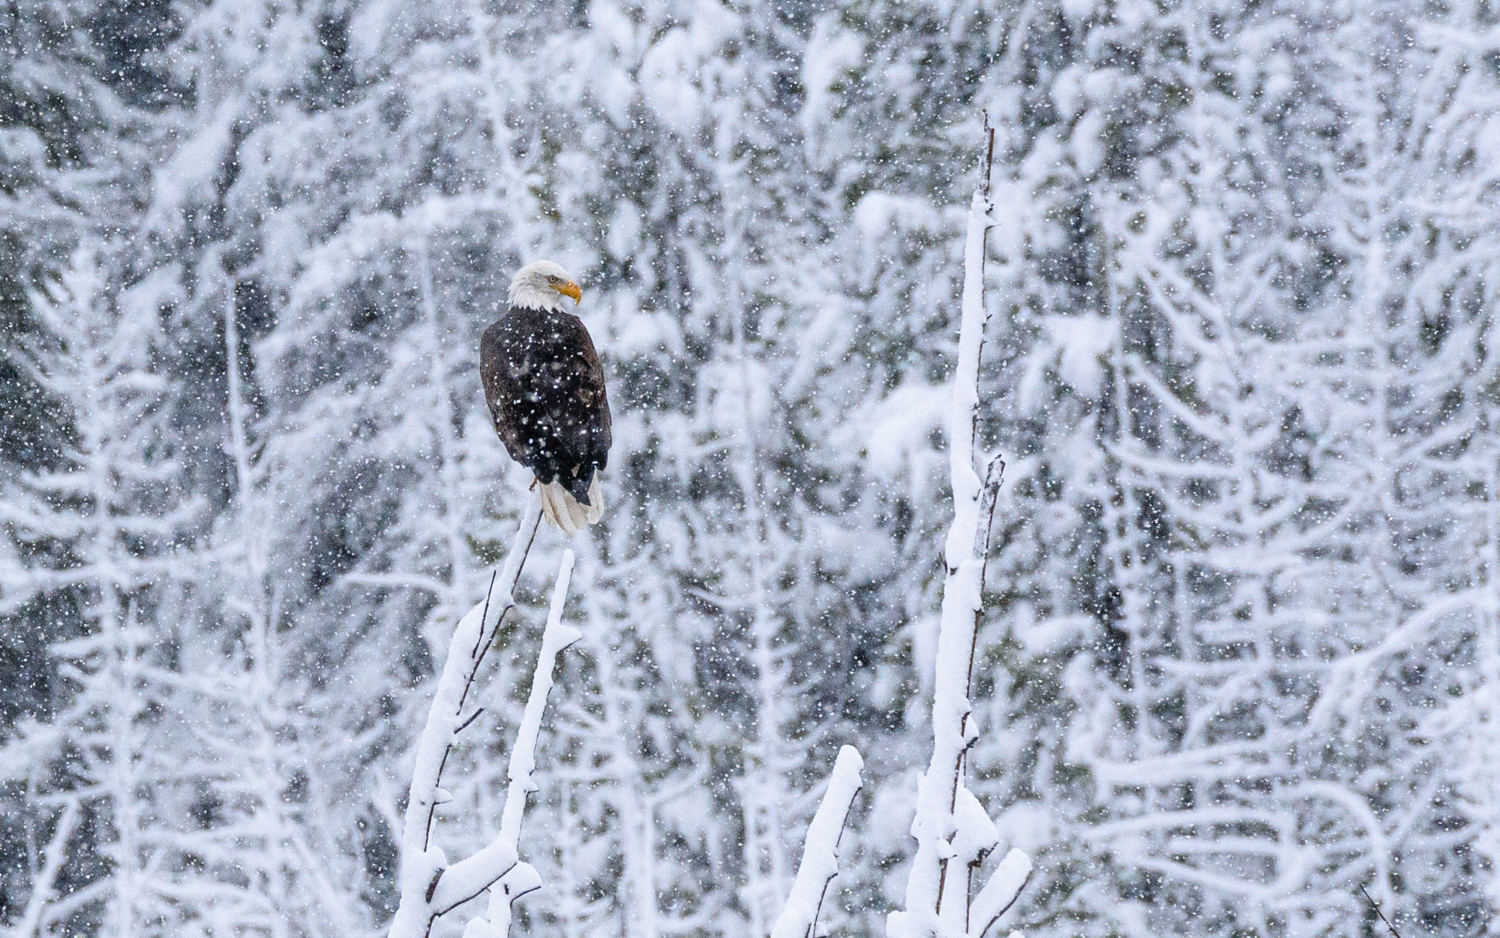 Solitude in Snow - Hawk Buckman Images of Nature